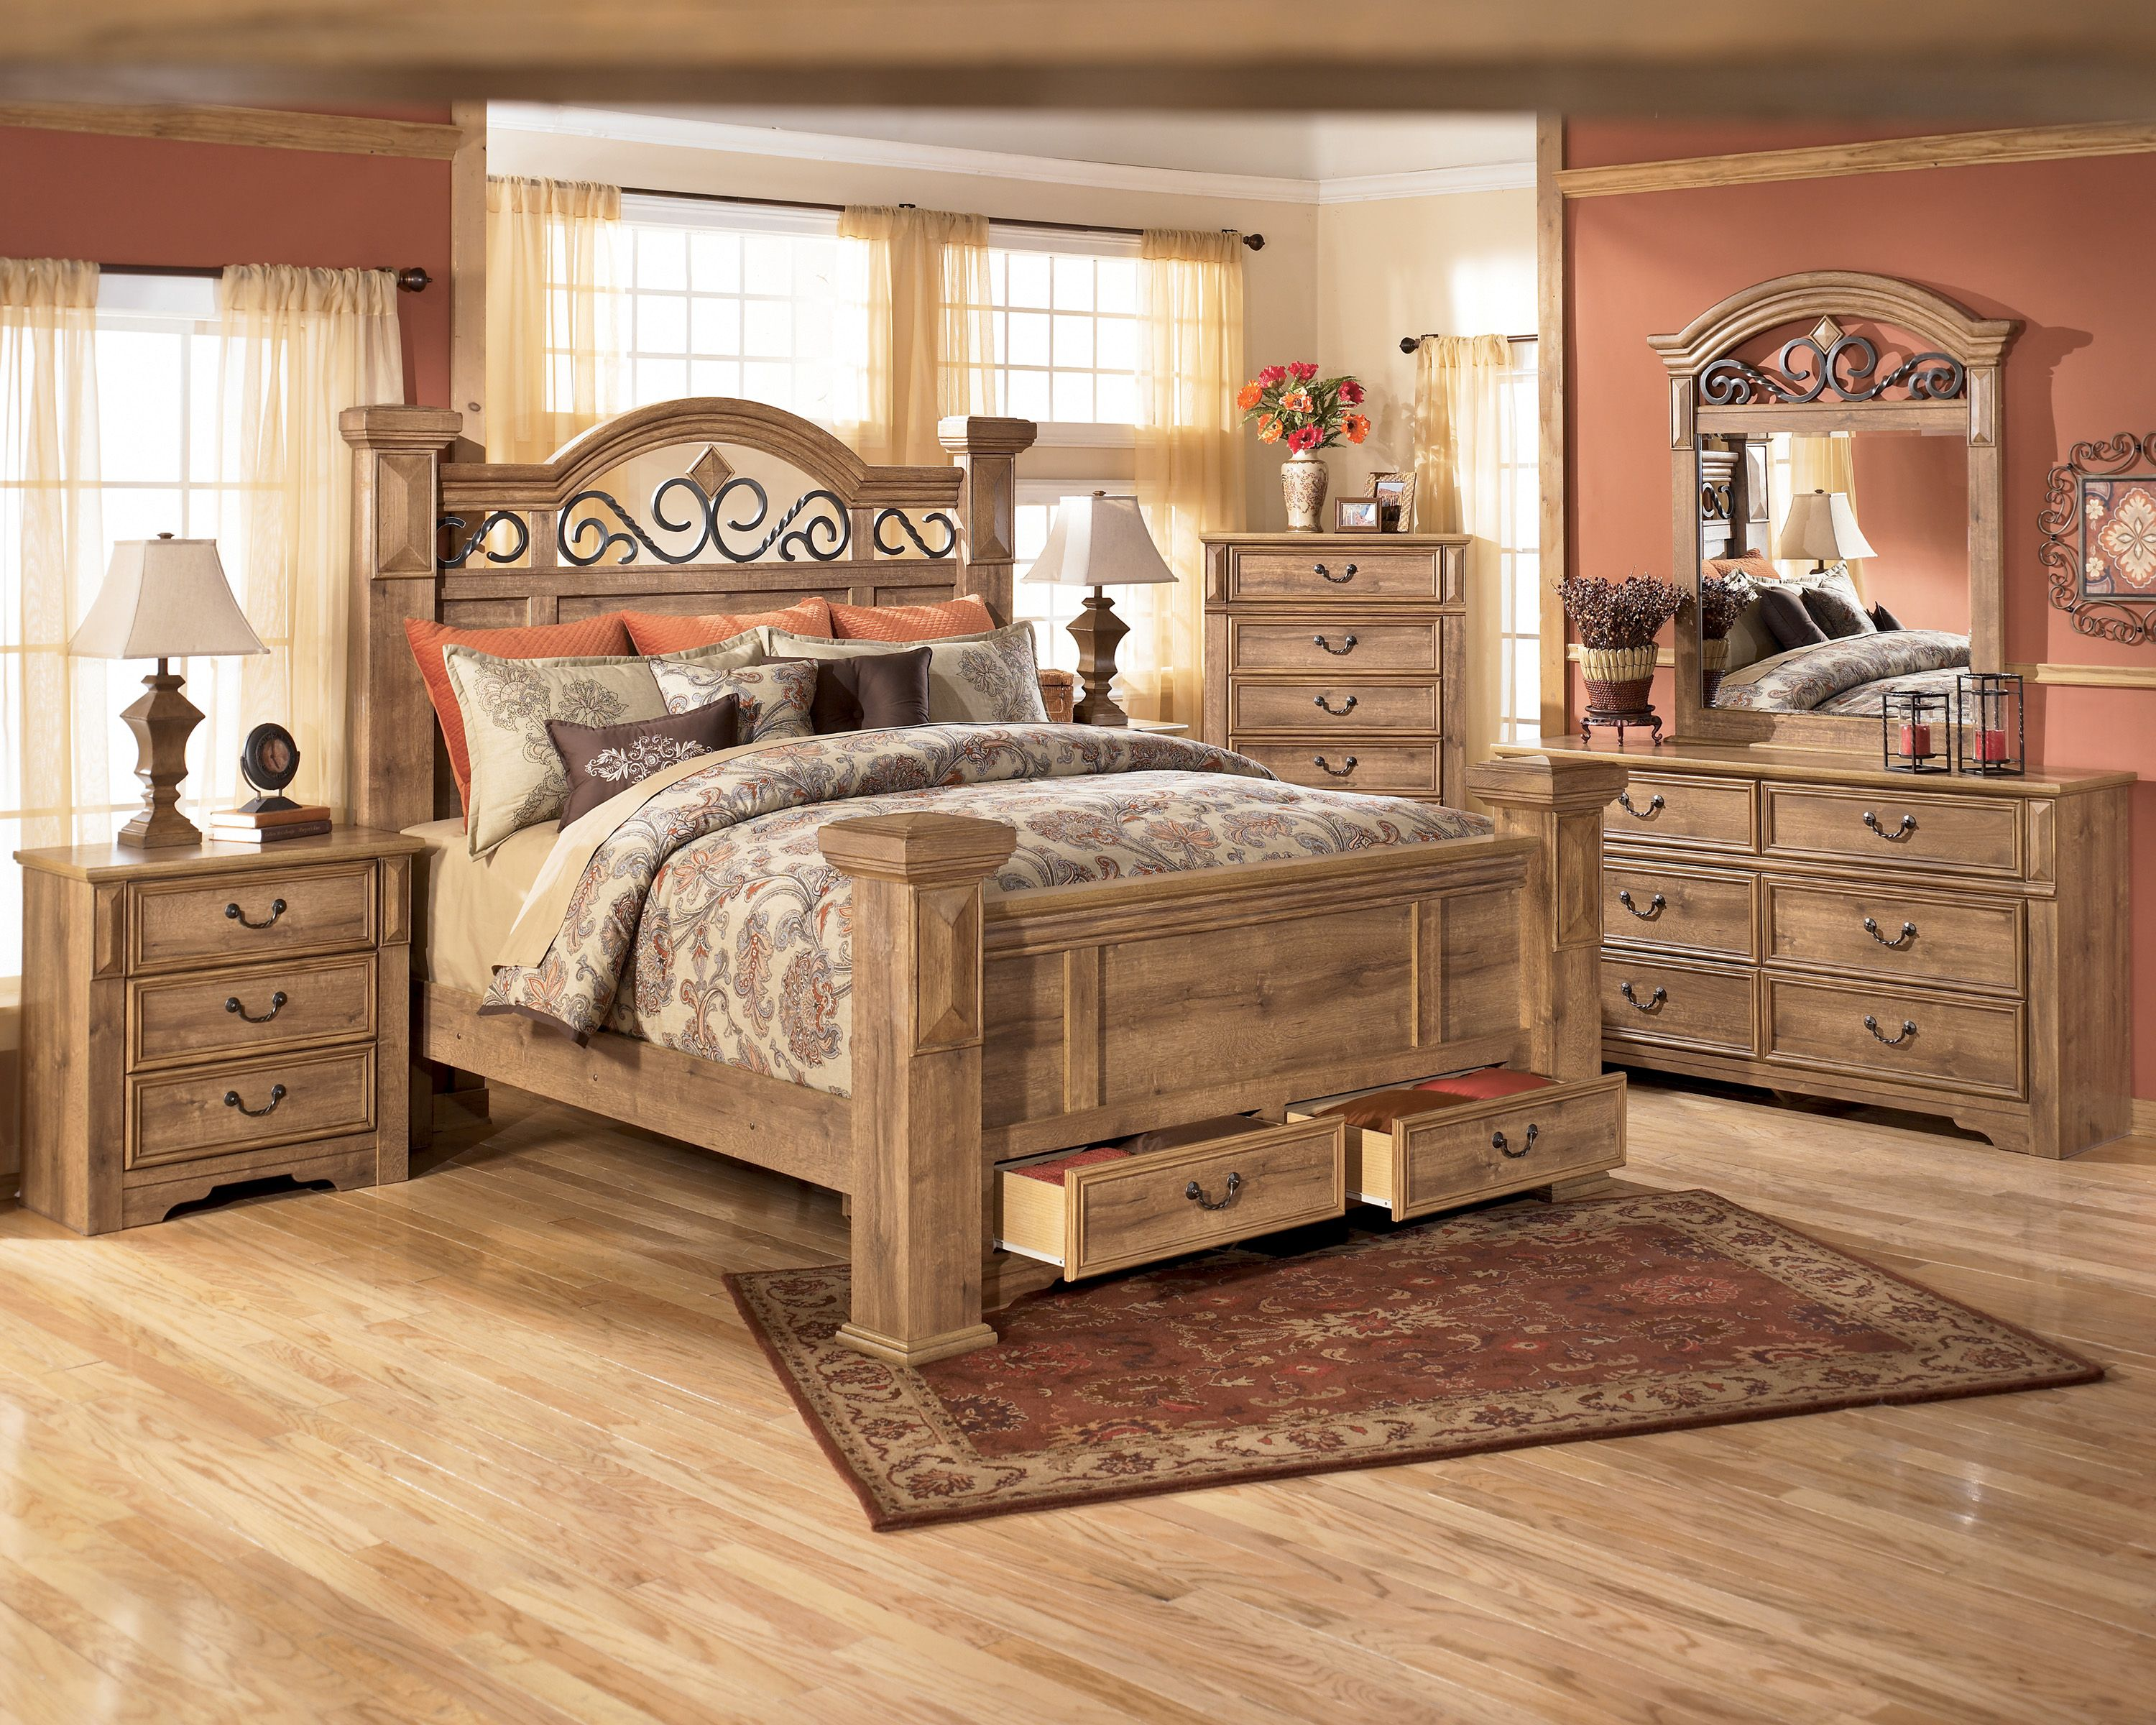 King Bedroom Furniture Gloria King Size Complete Bedroom Set Rosalinda Furniture Best King